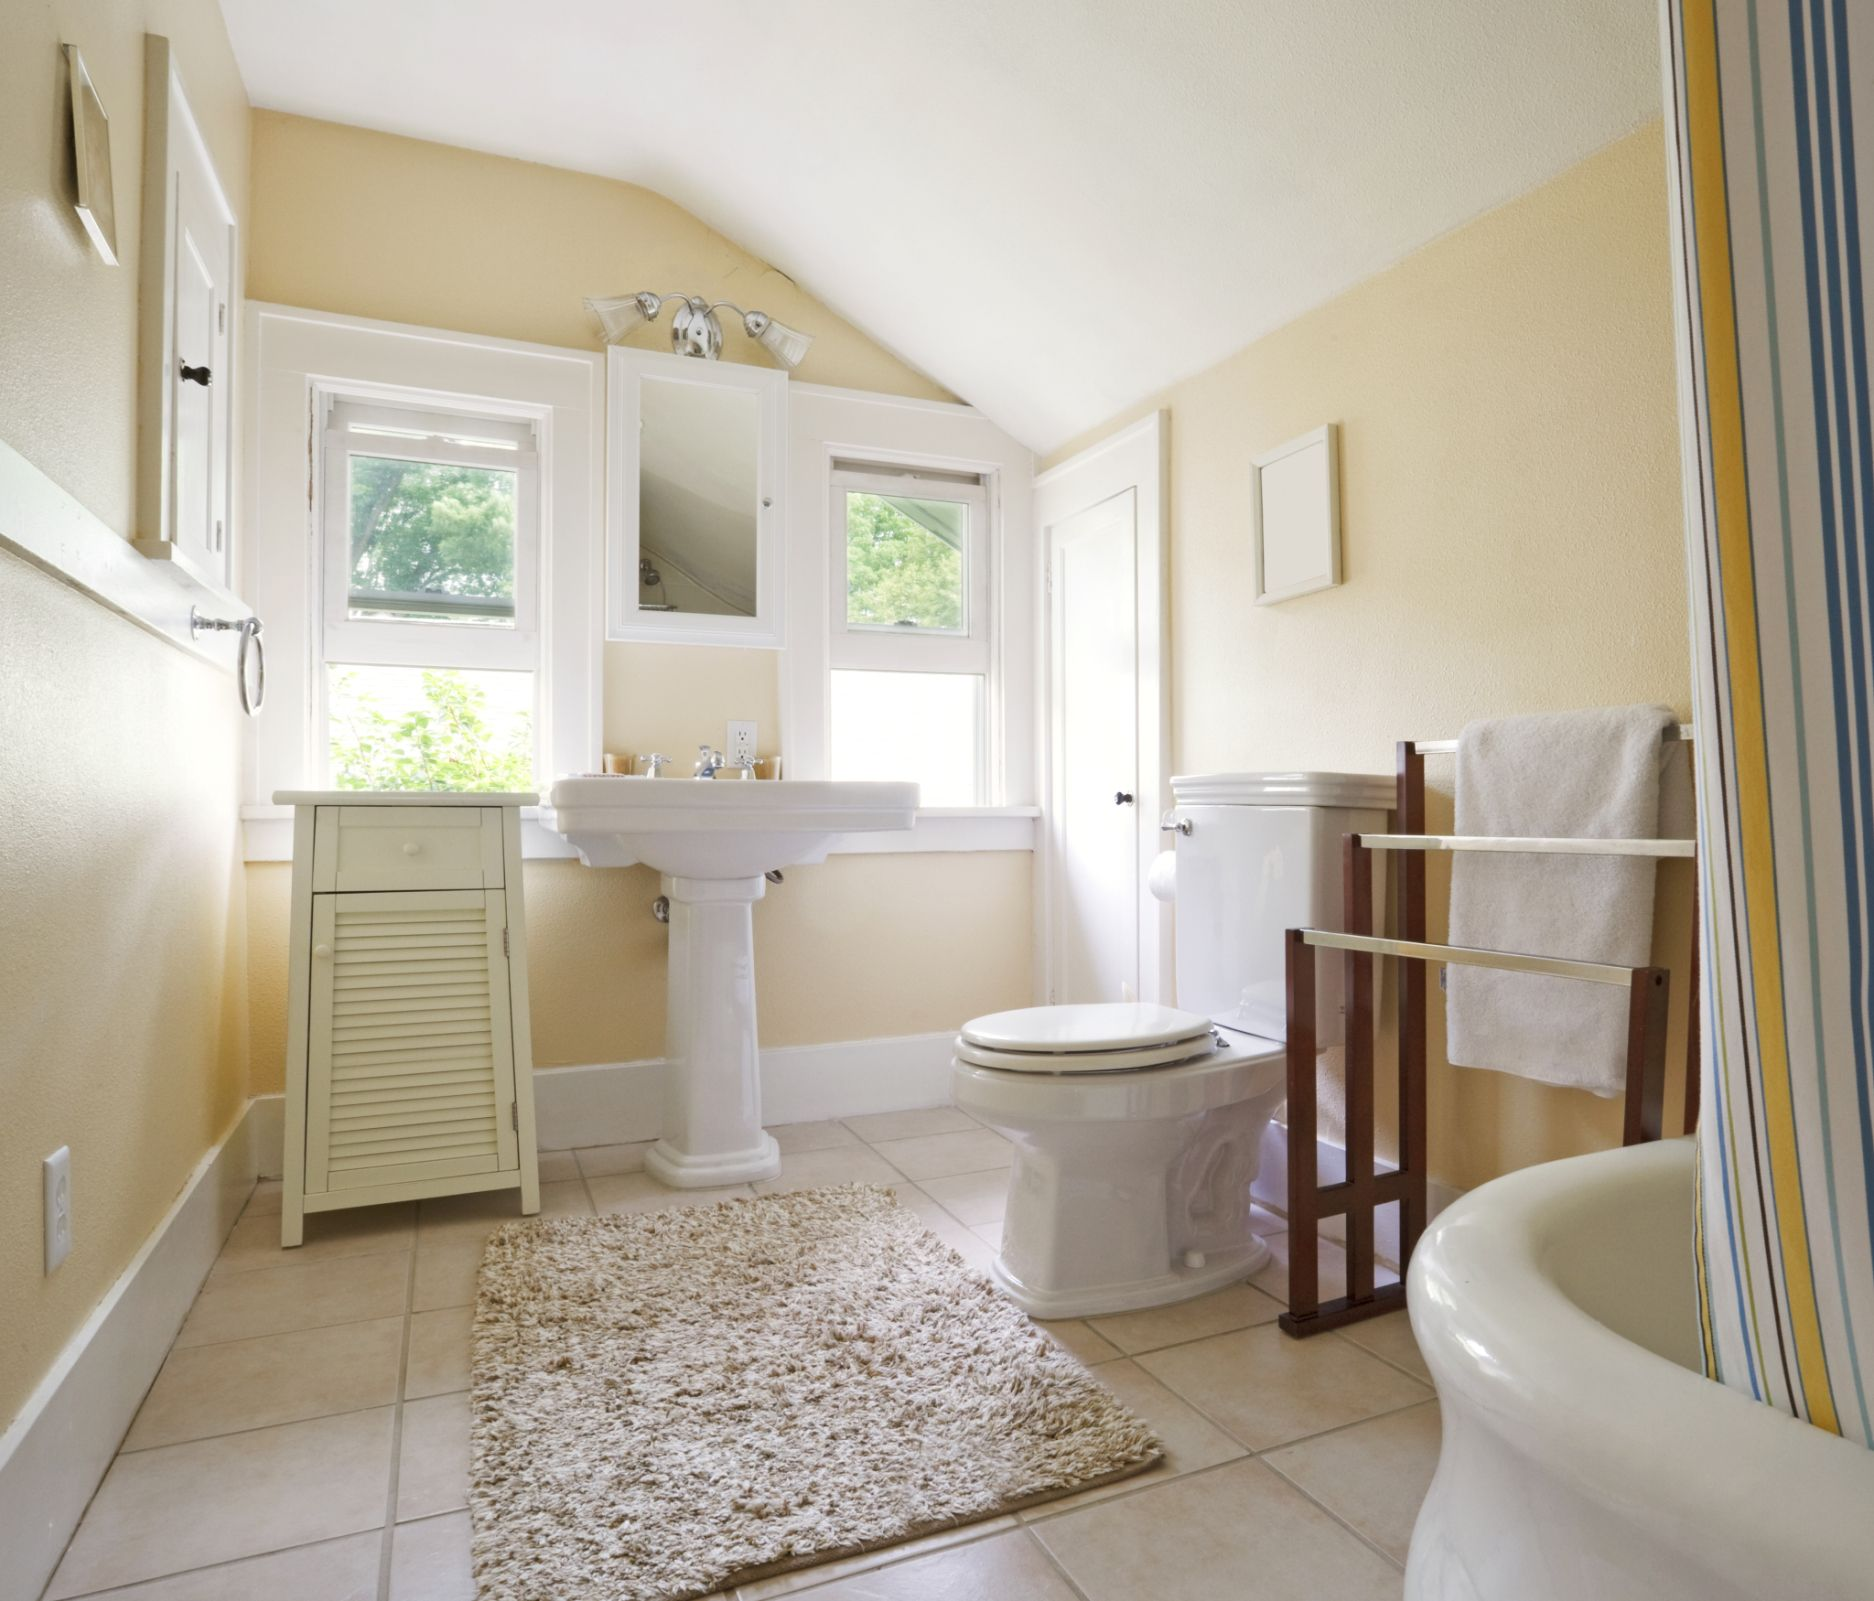 Keep Bathroom Clean Longer - Bathroom Cleaning Tips